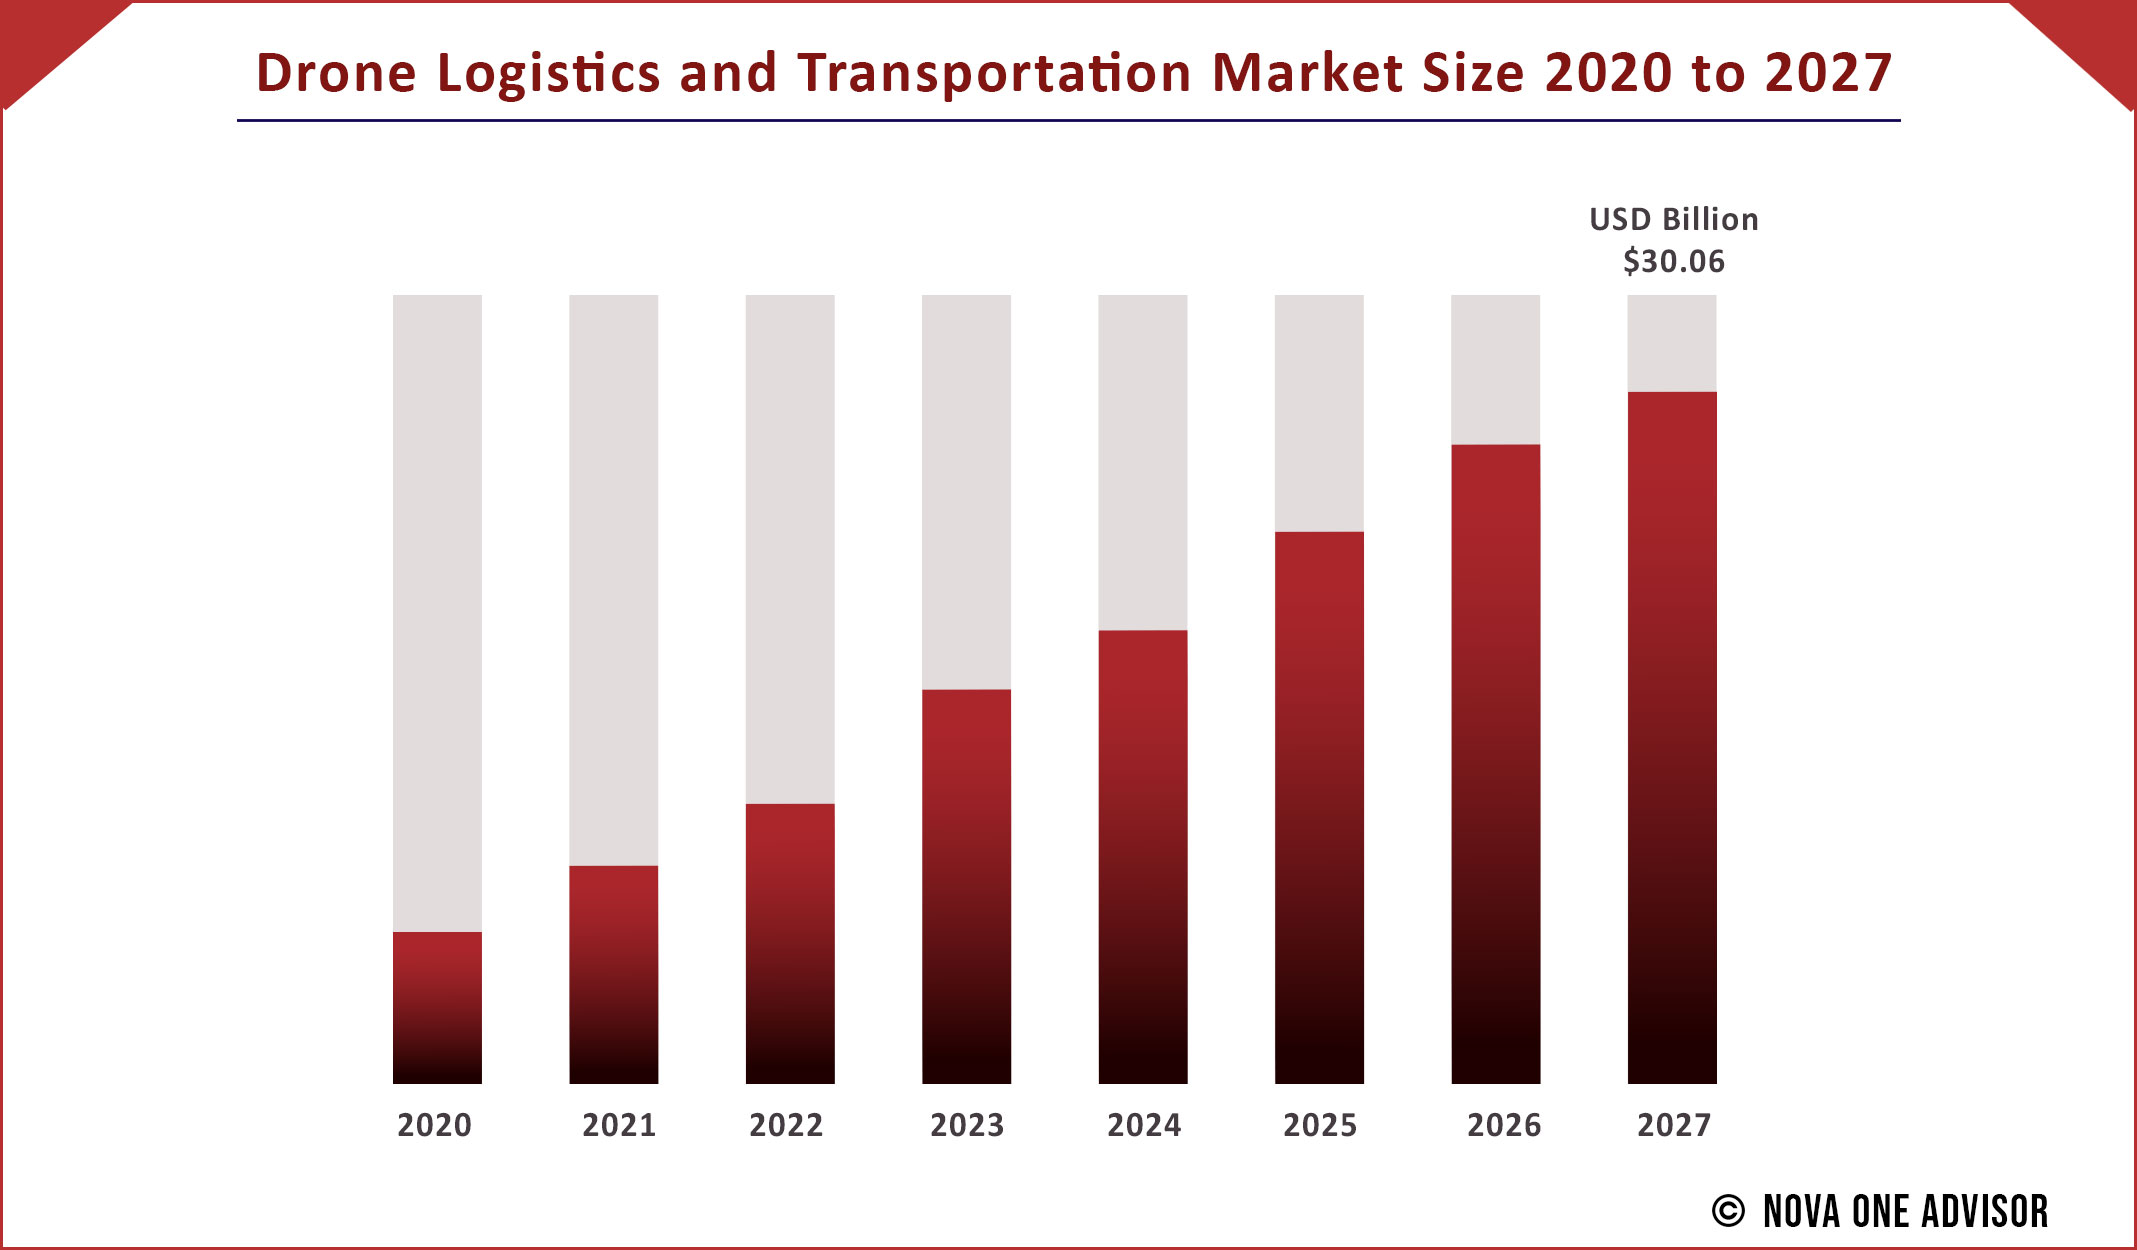 Drone Logistics and Transportation Market Size 2020 to 2027